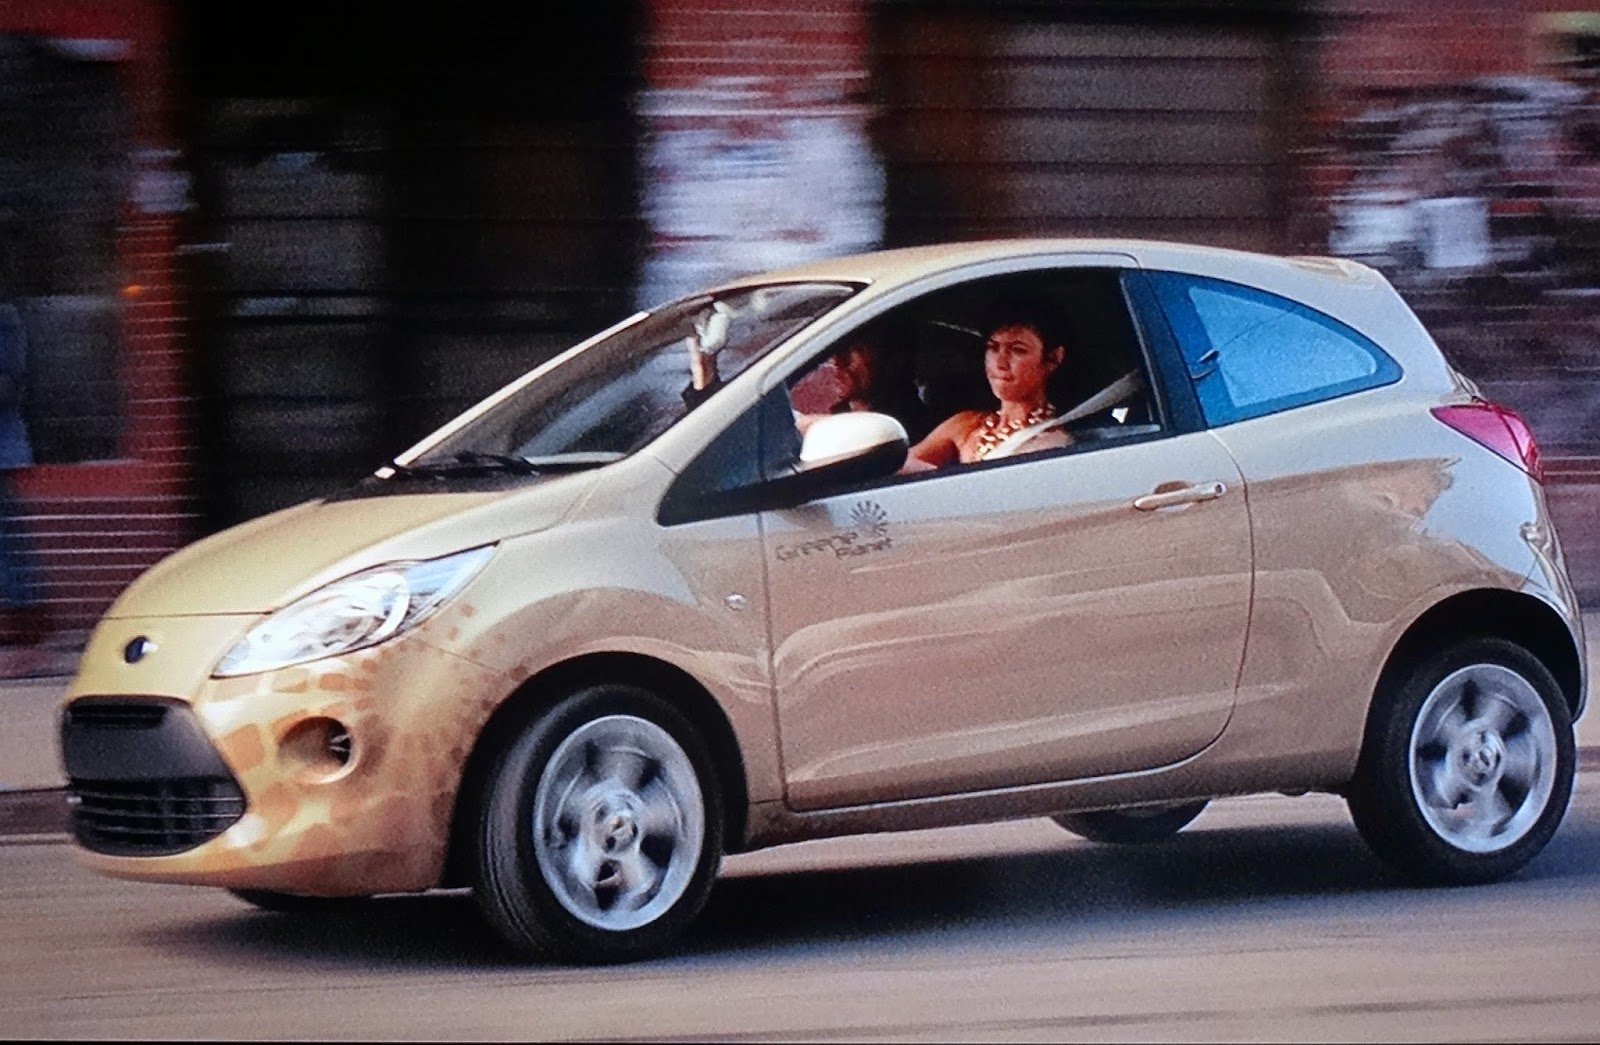 007 TRAVELERS: 007 Vehicle: Ford Ka / Quantum of Solace (2008)